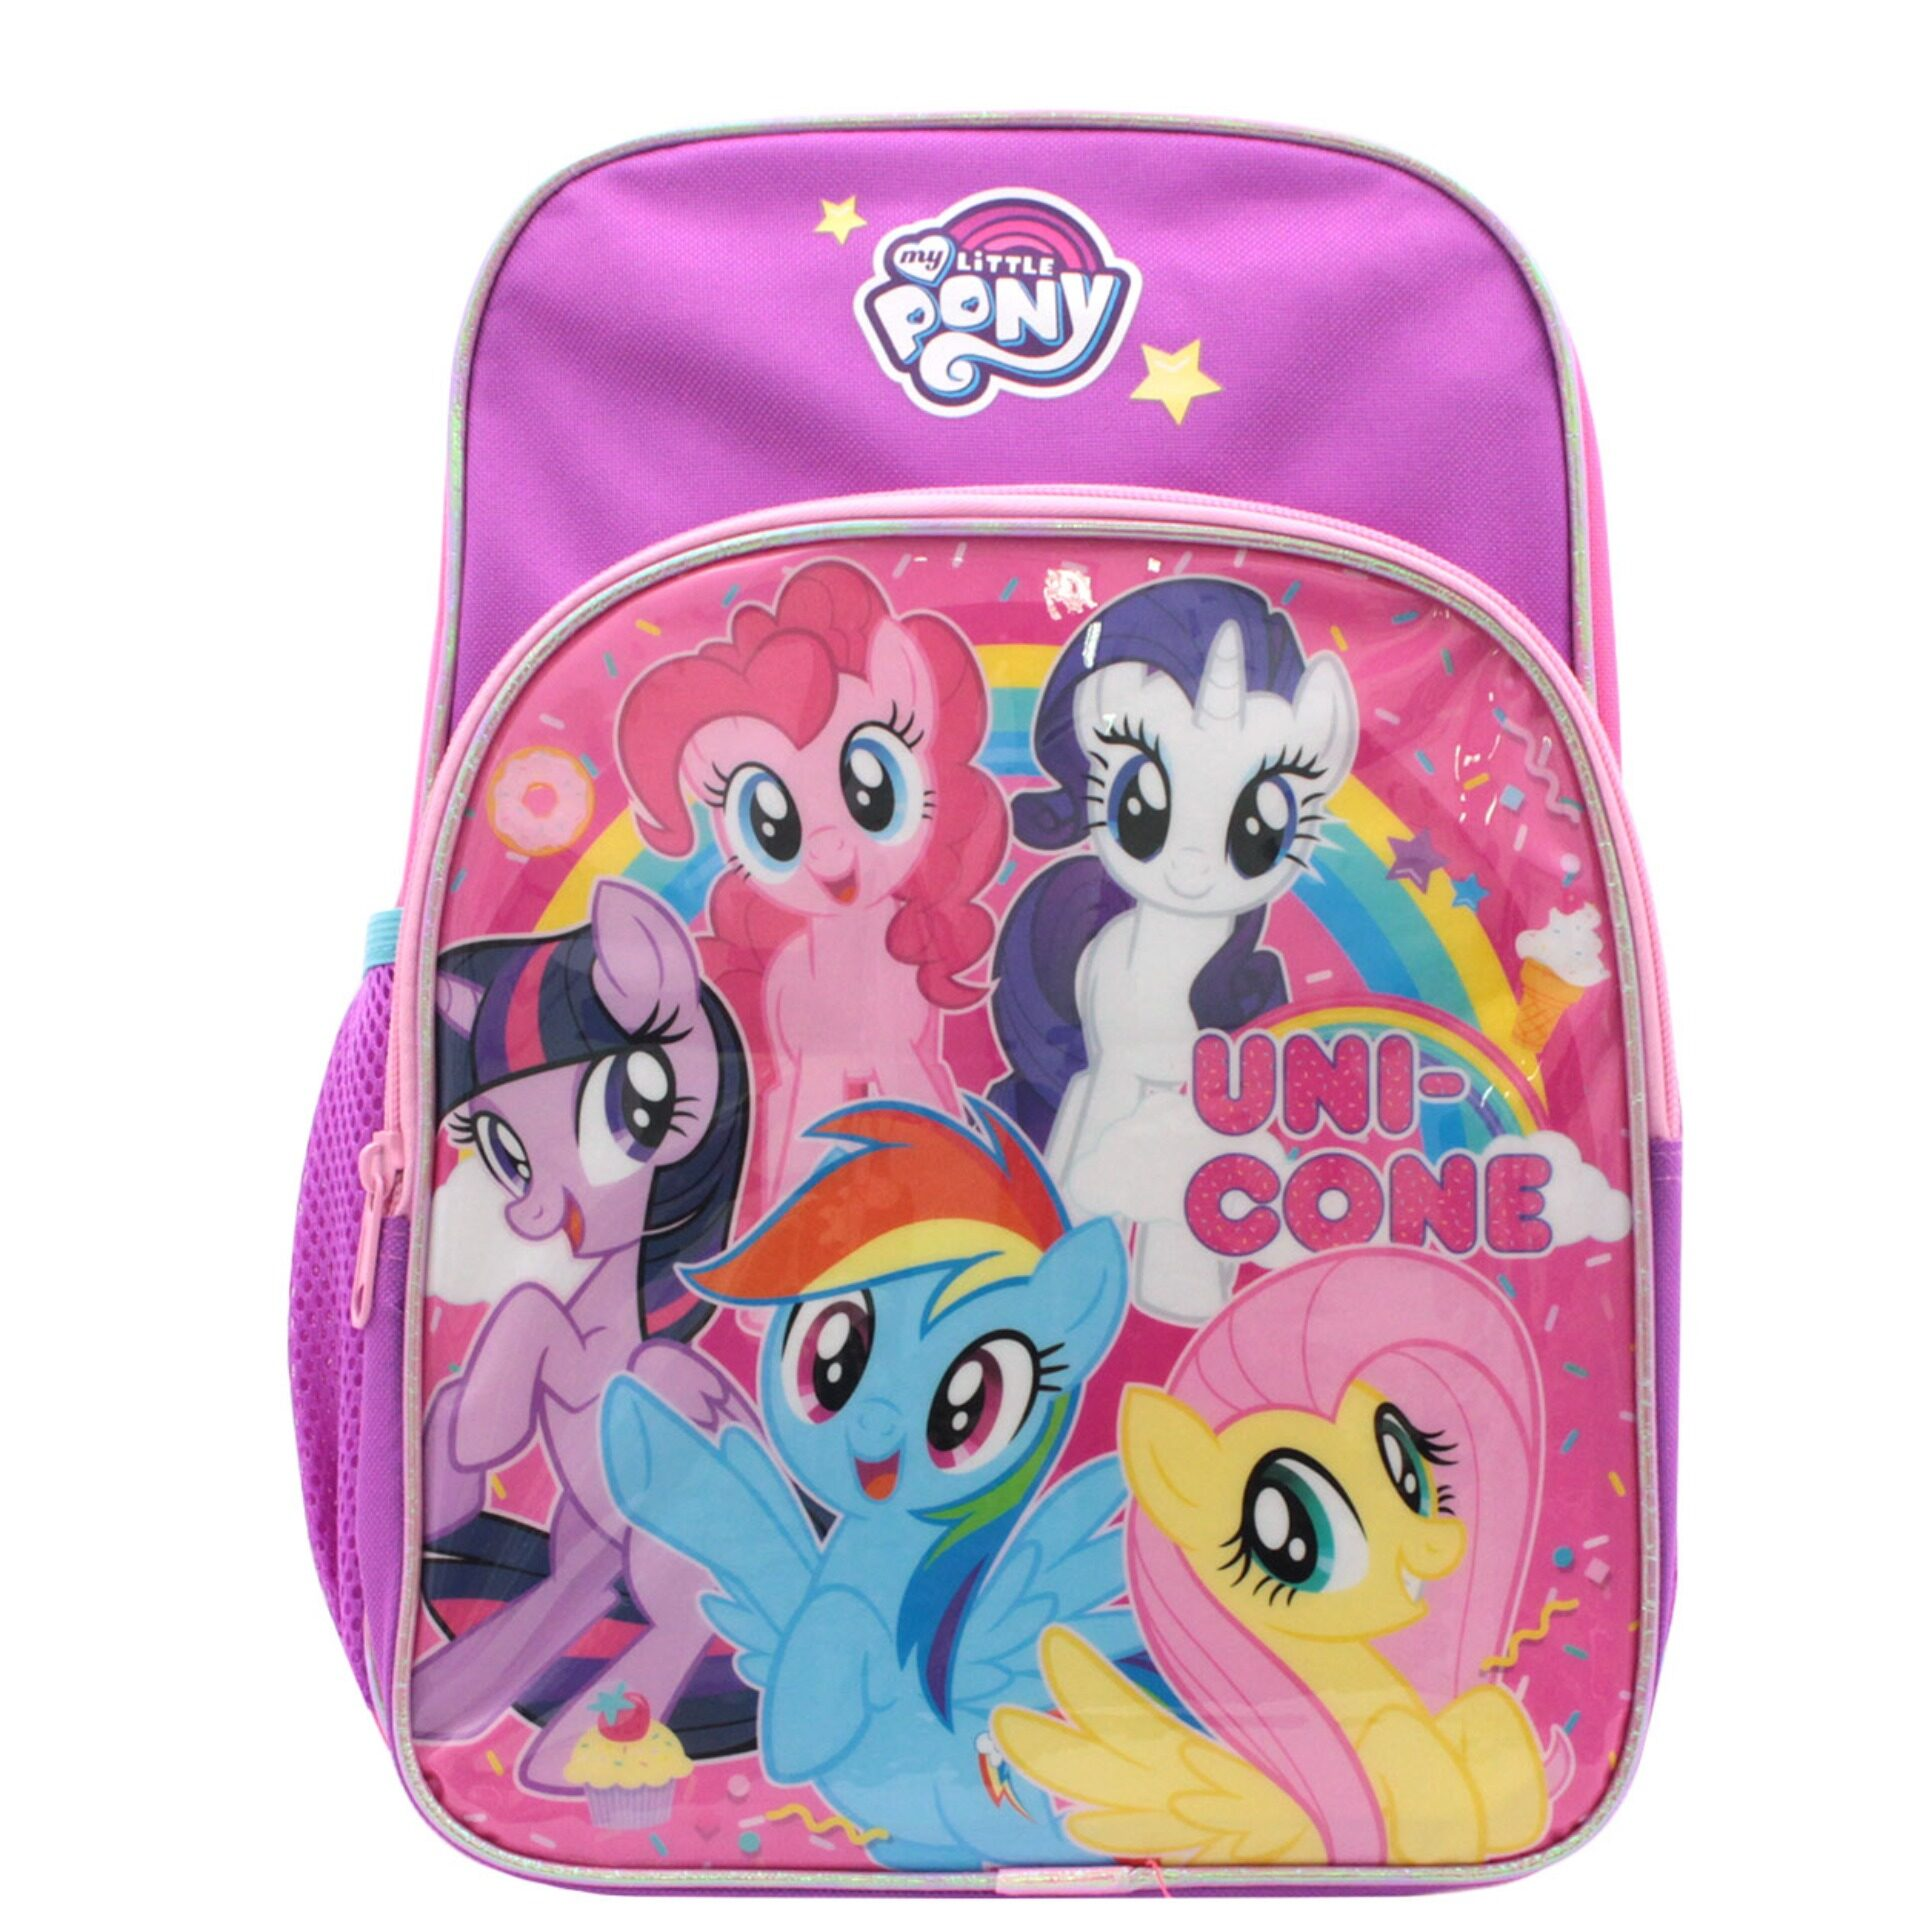 My Little Pony Unicone 12 Inch School Backpack (Deep Pink) (Age 4 & Above)